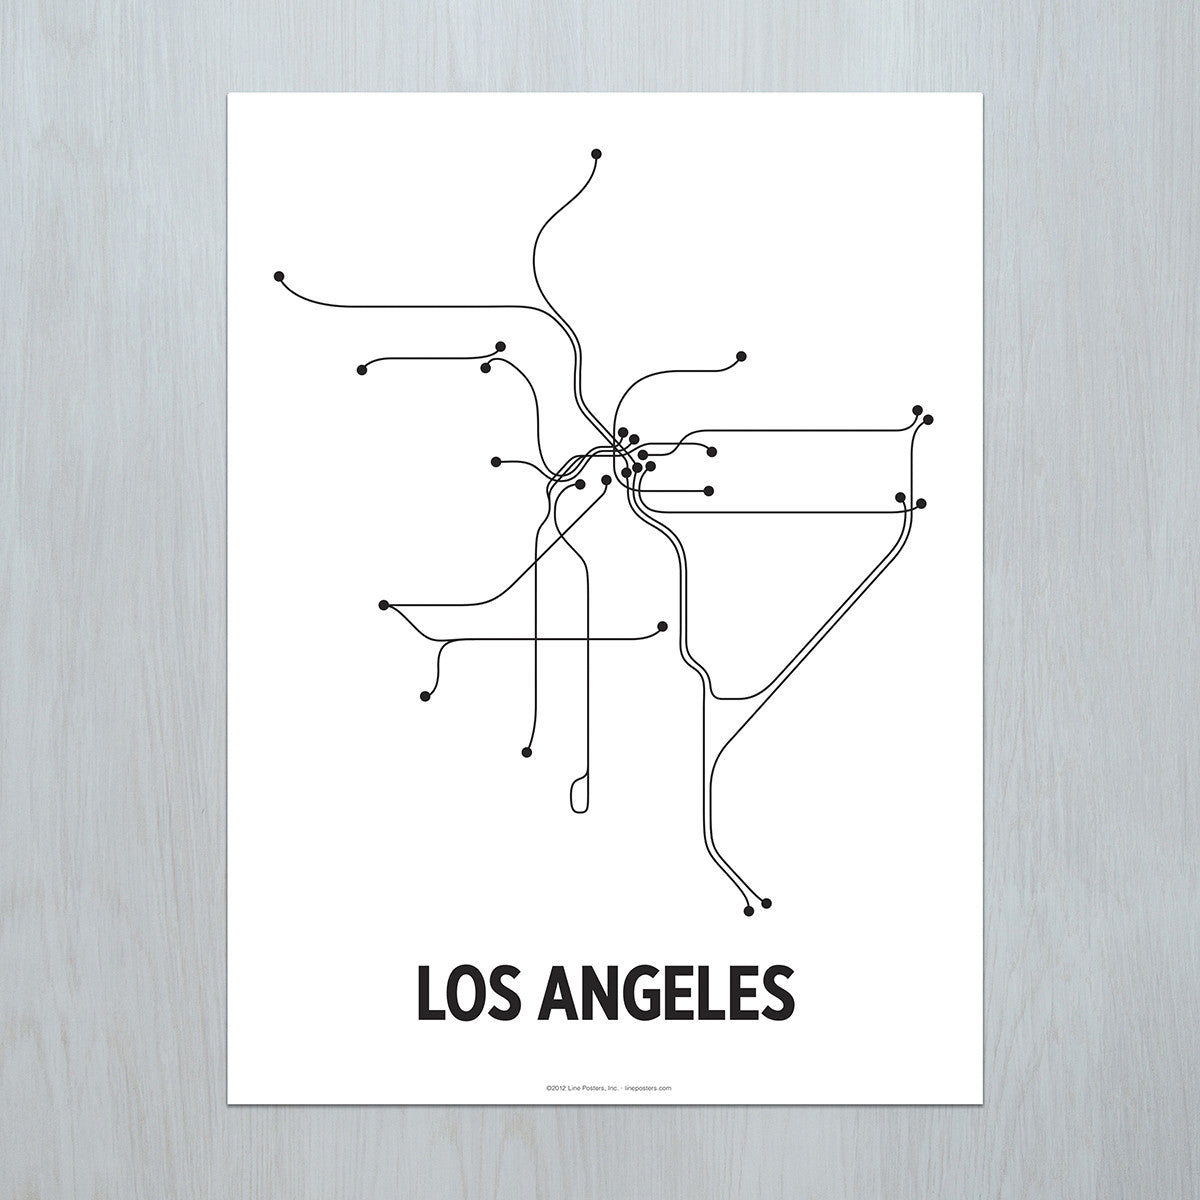 Los Angeles Poster  LinePosters - Los angeles poster black and white